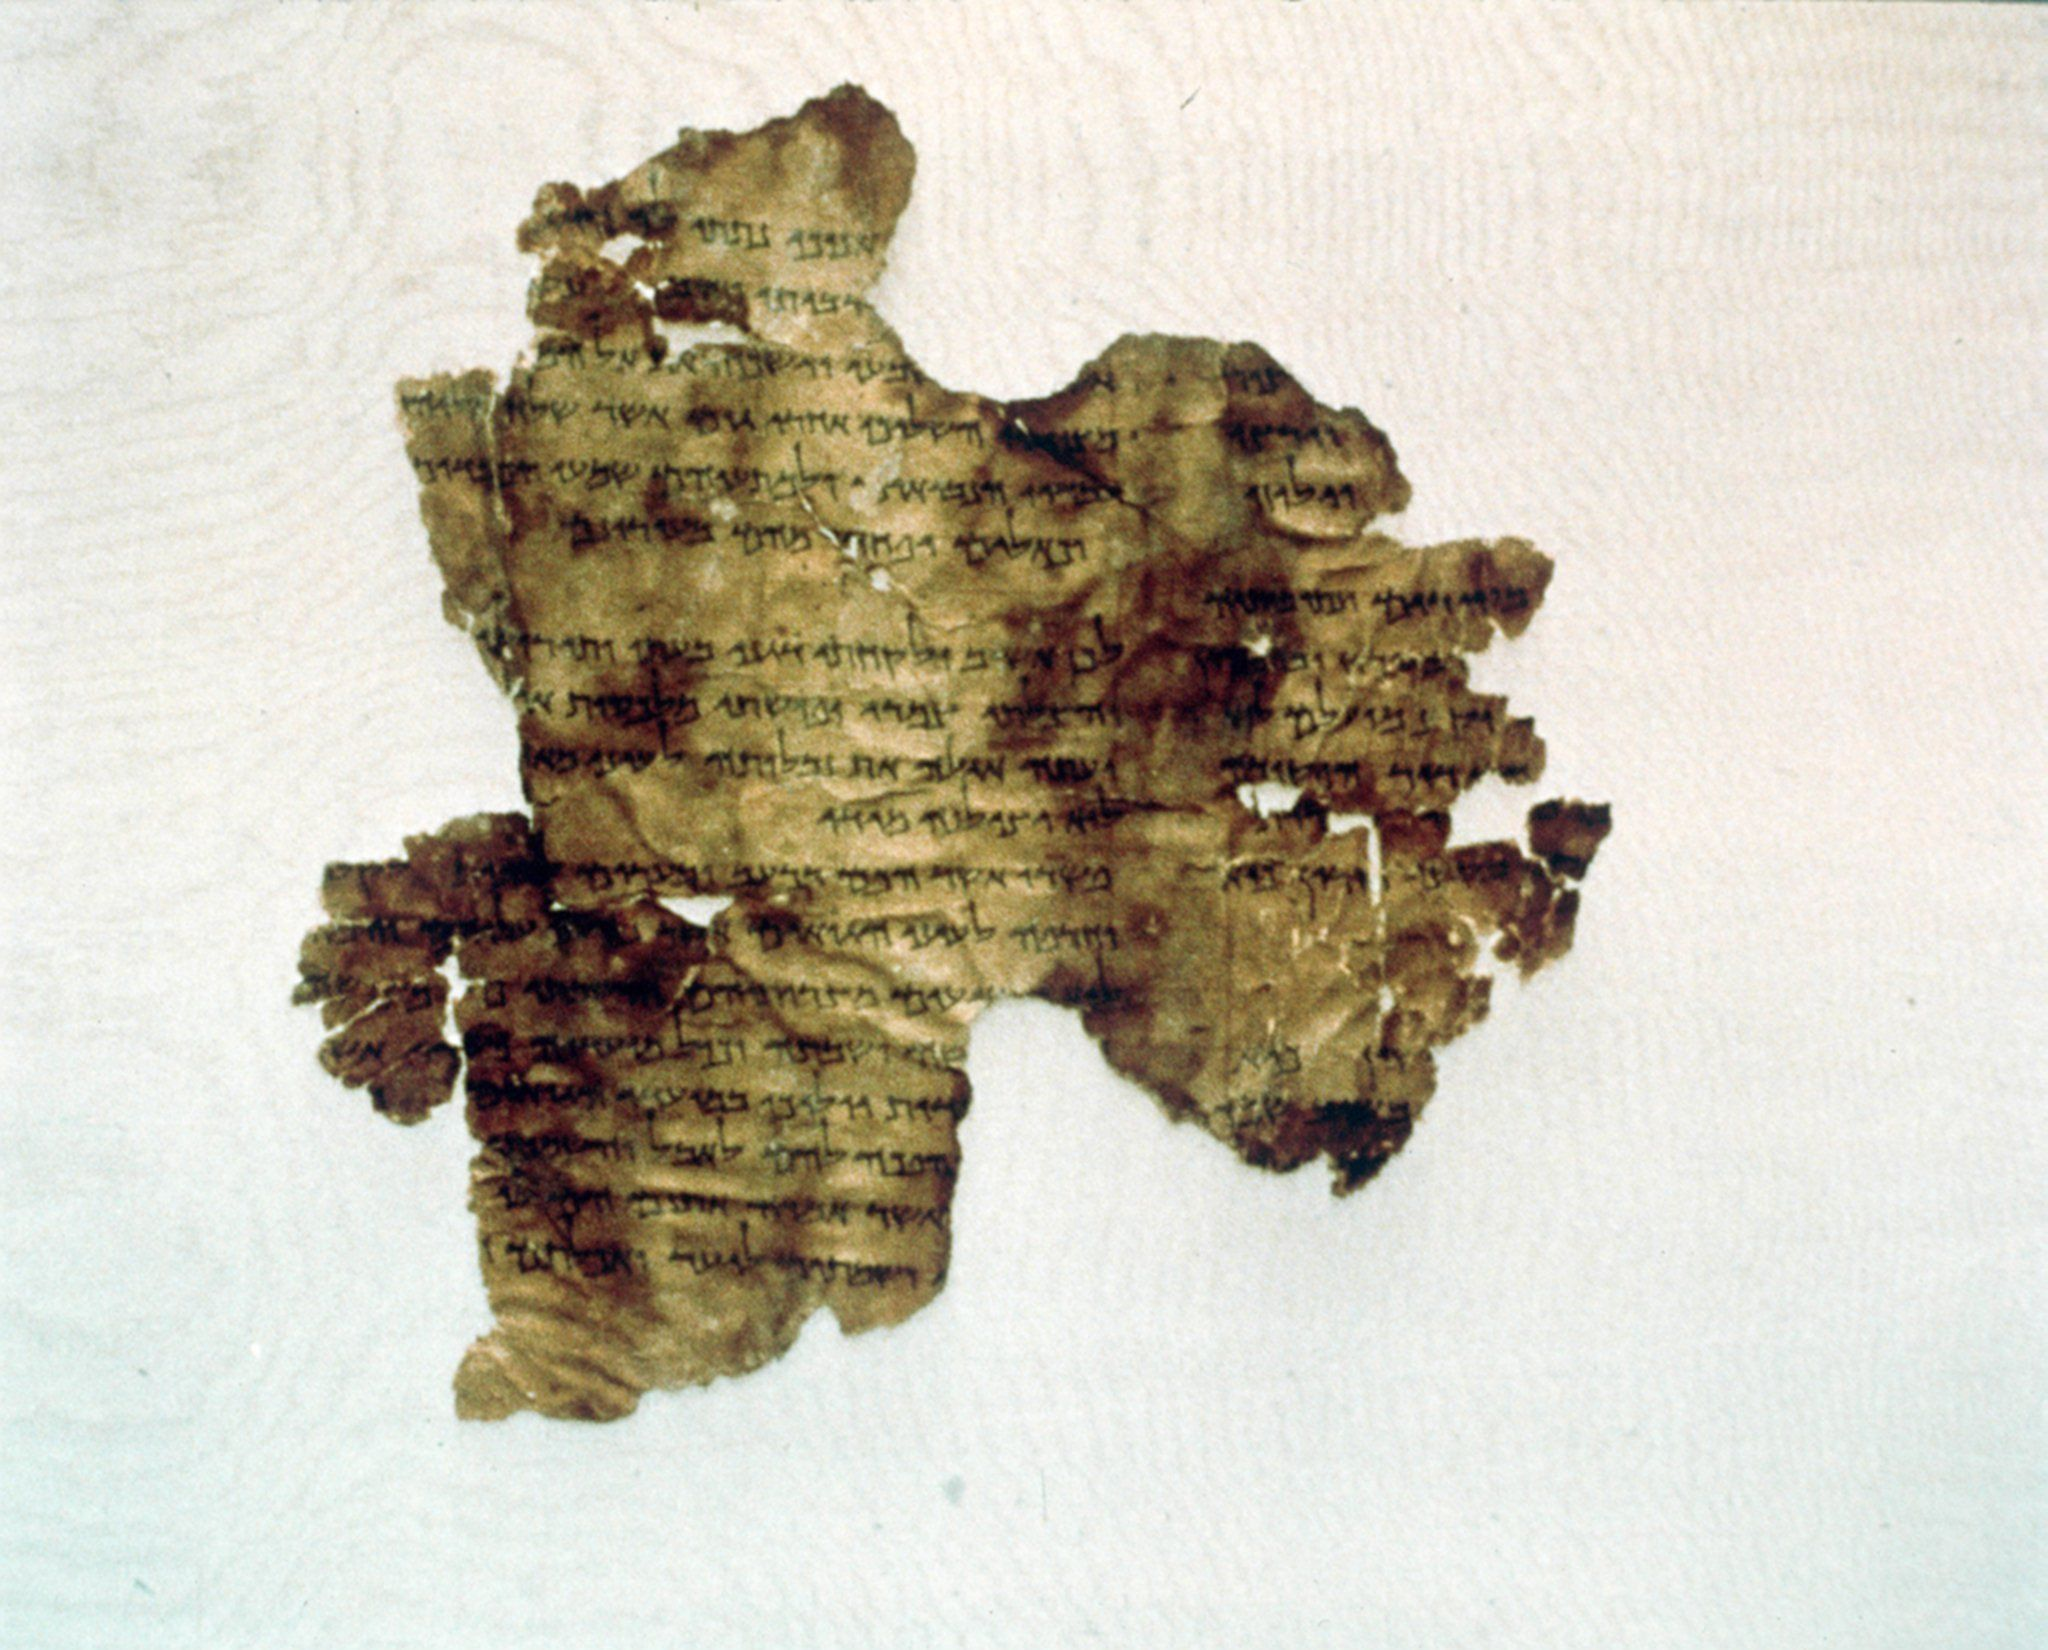 U.S. Bible museum says five Dead Sea Scrolls fragments fake